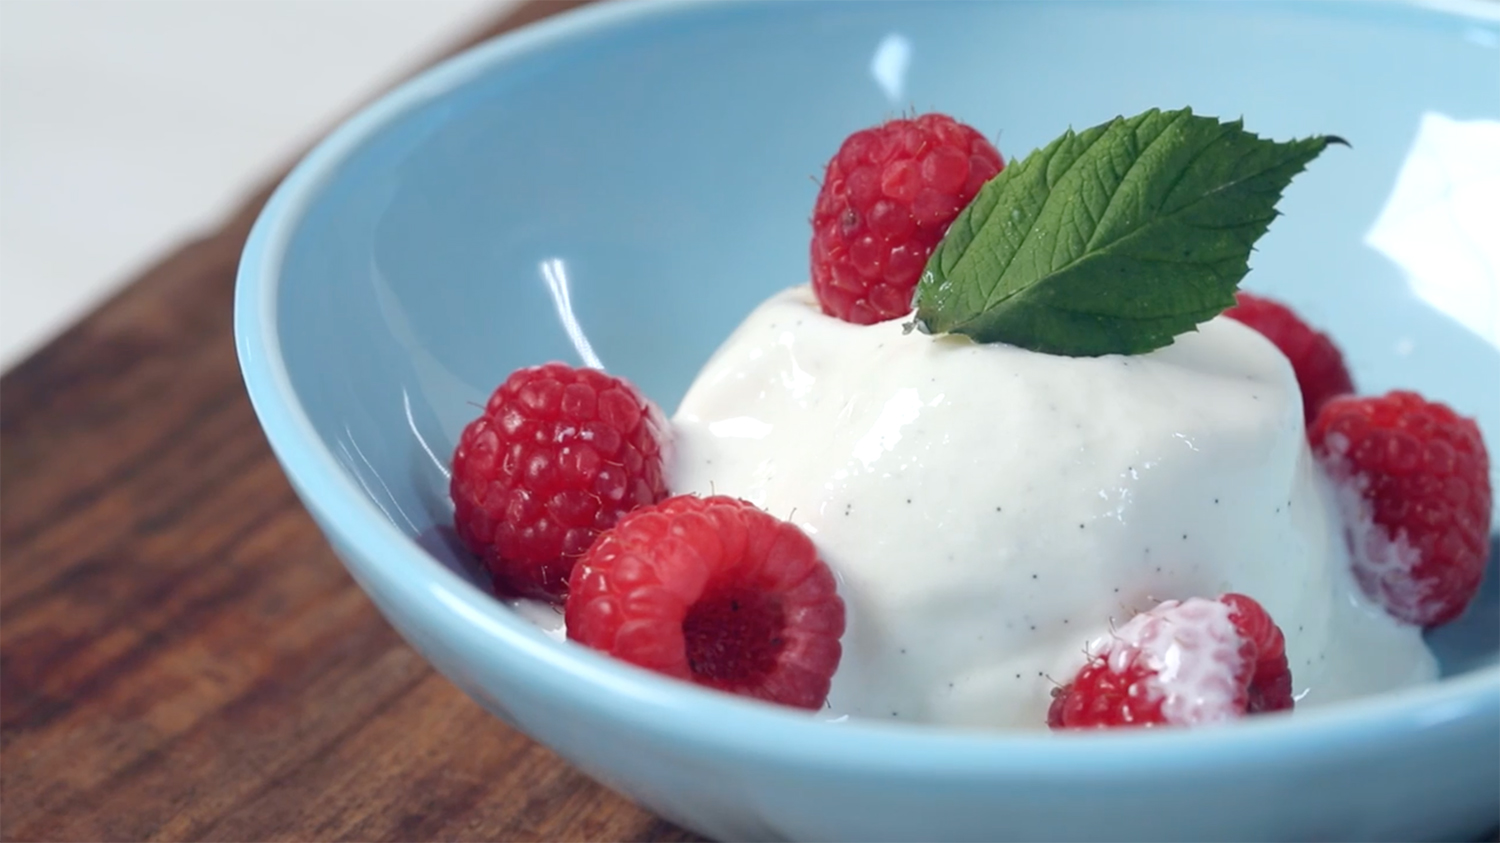 How to Make Homemade Frozen Yogurt